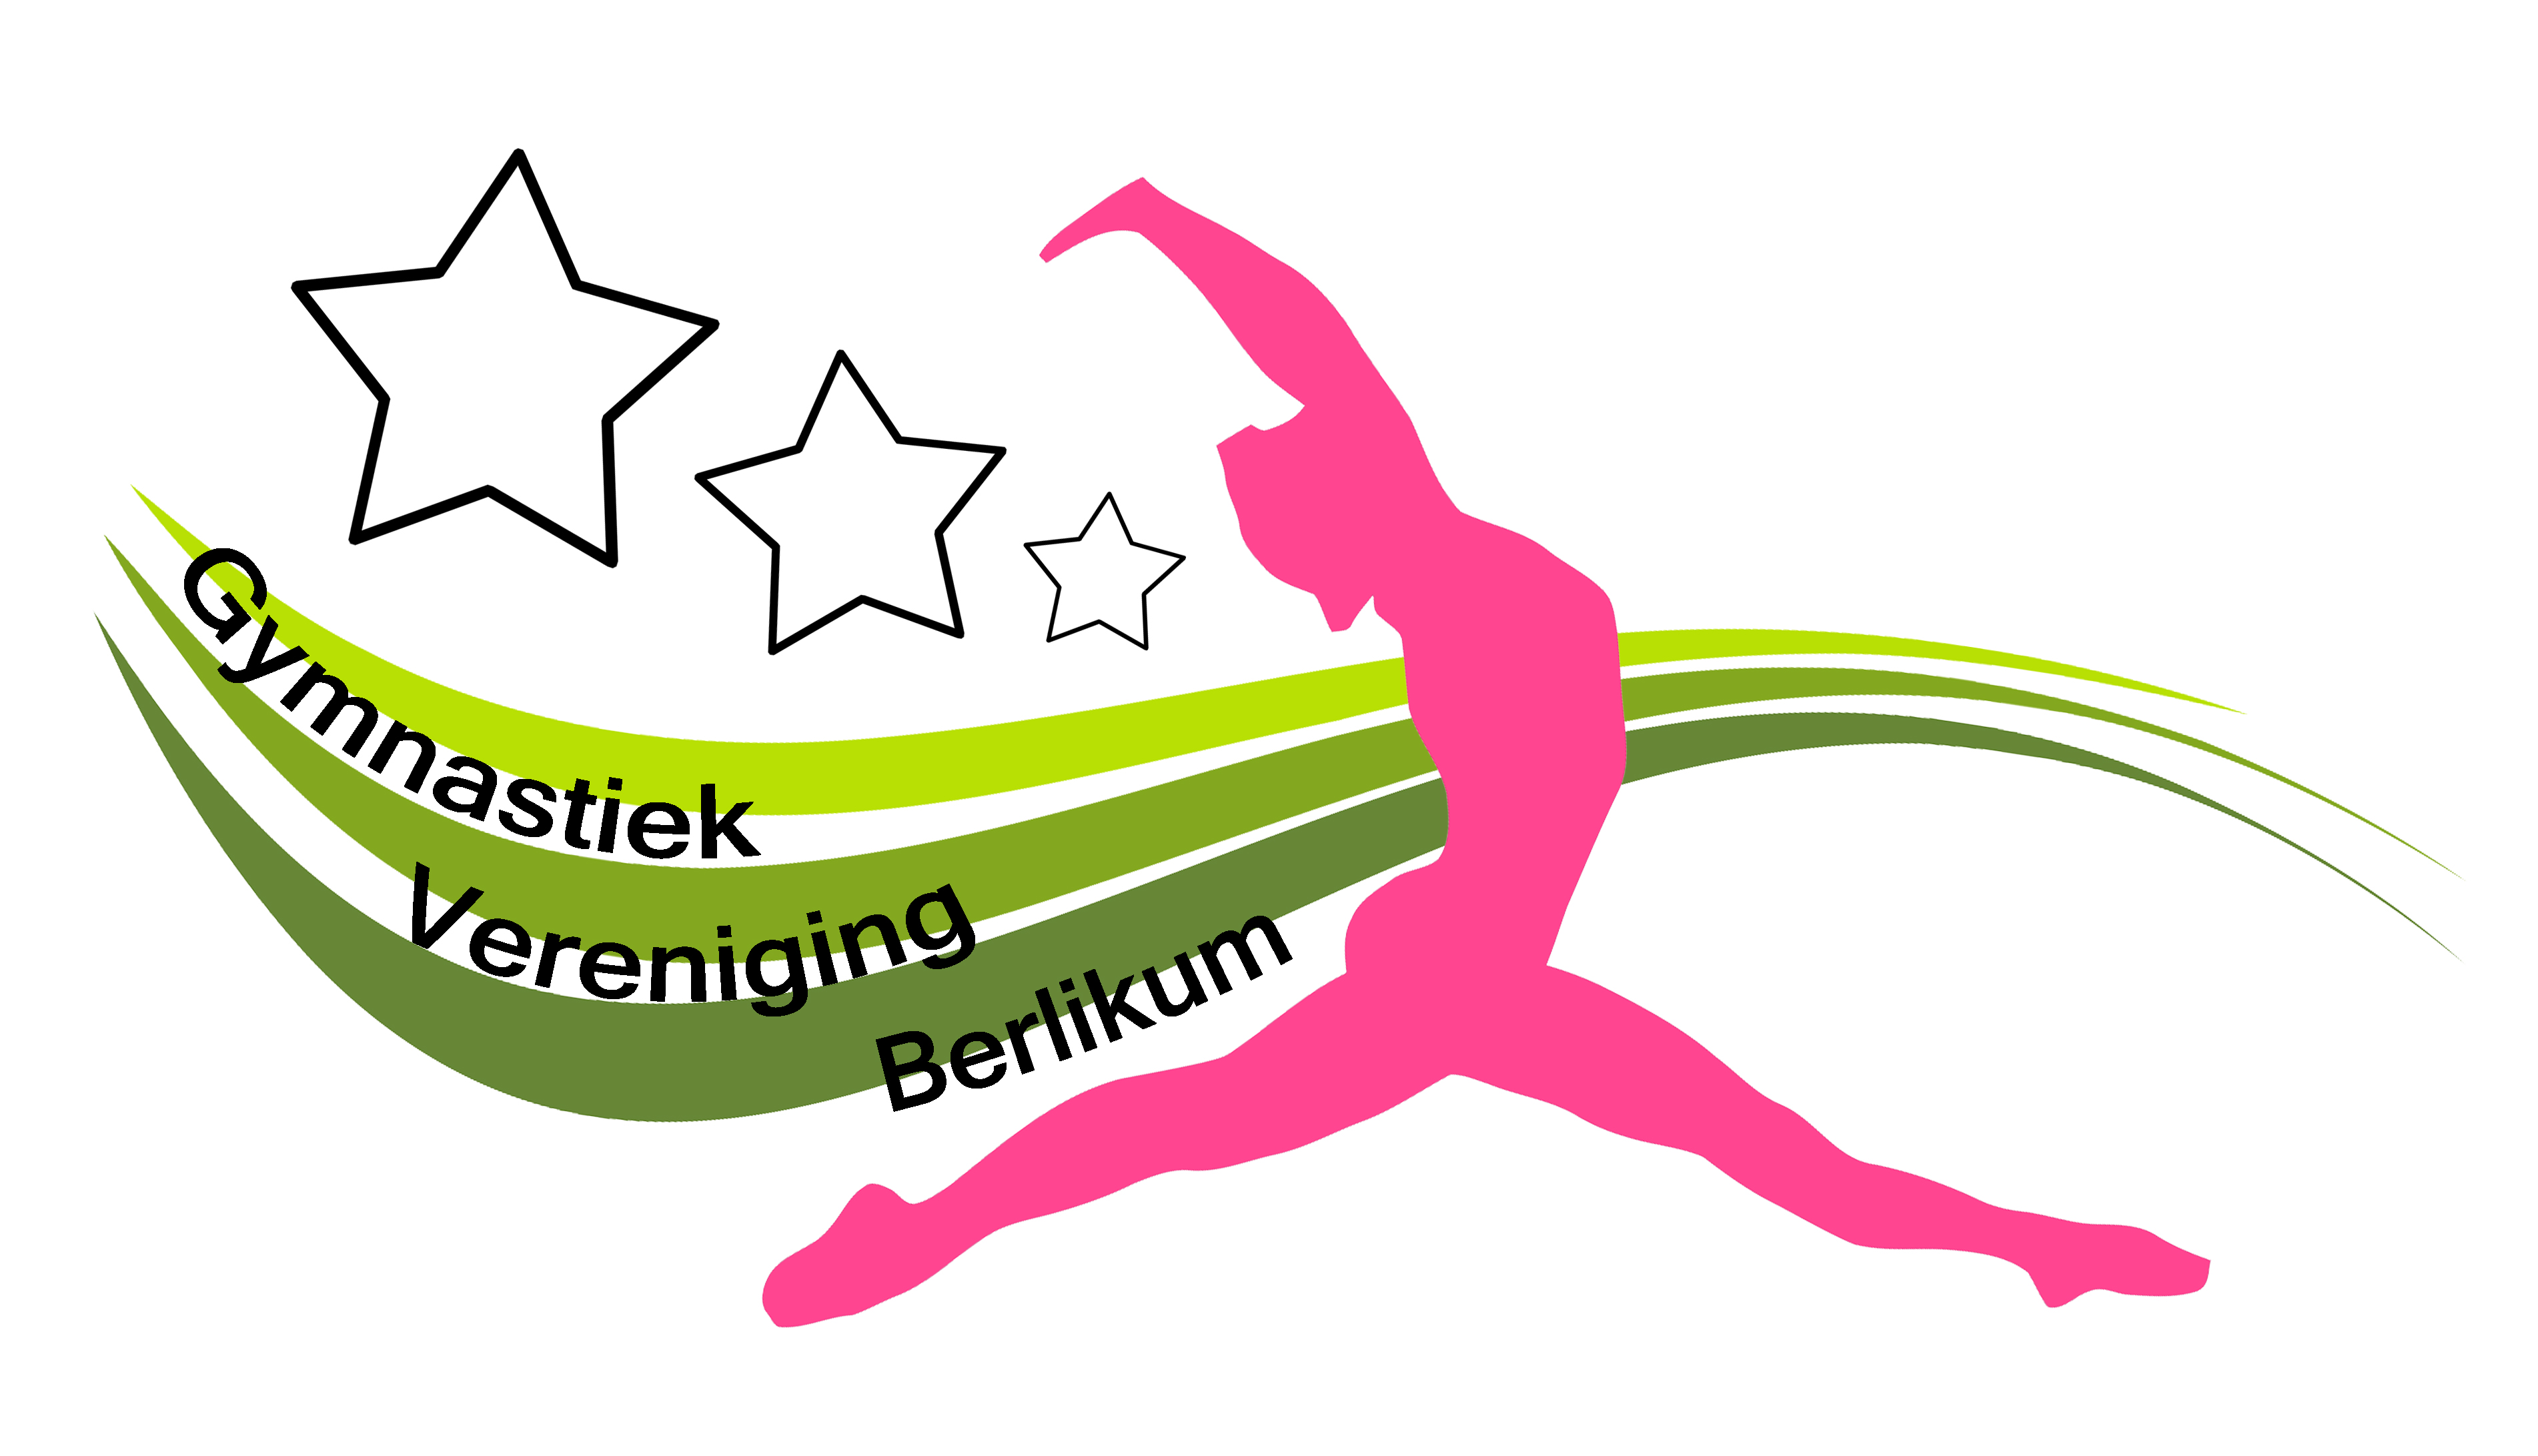 Gymnastiek Vereniging Berlikum